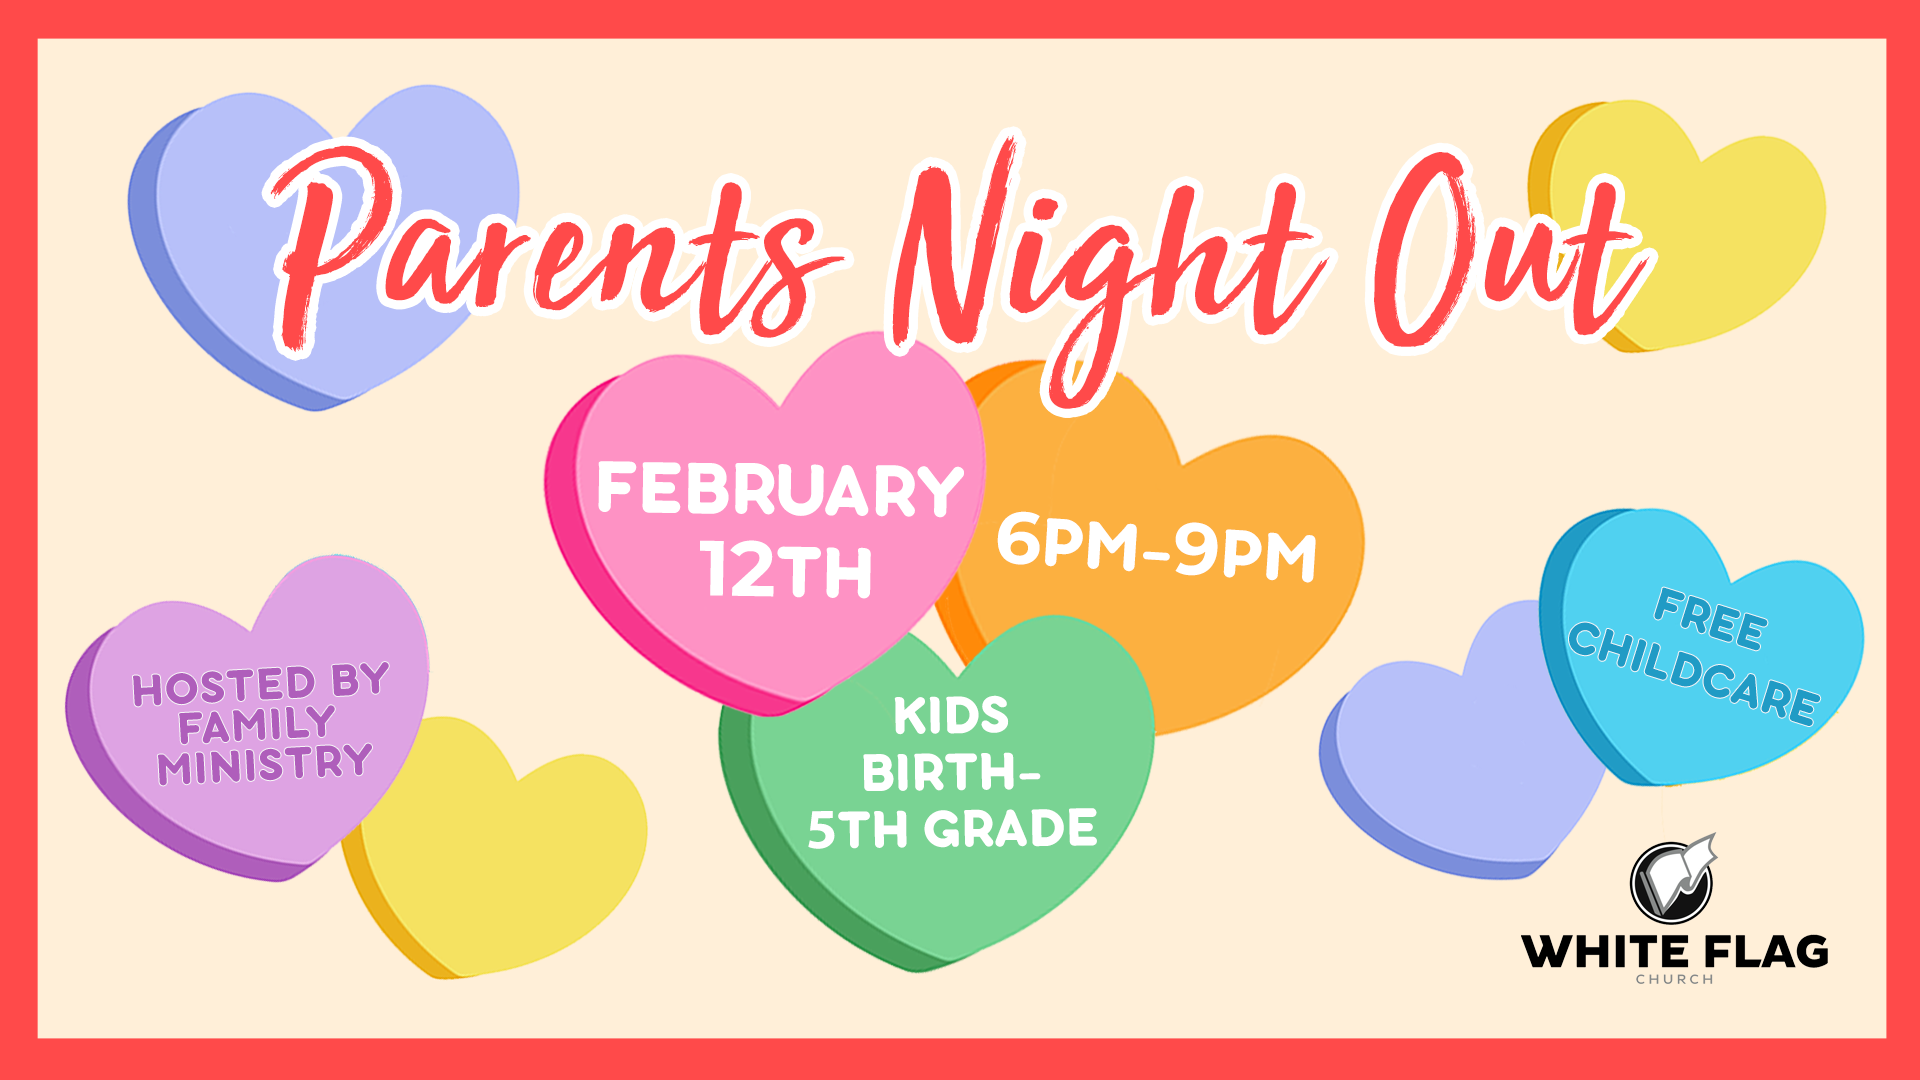 Parents Night Out 1920x1080 image